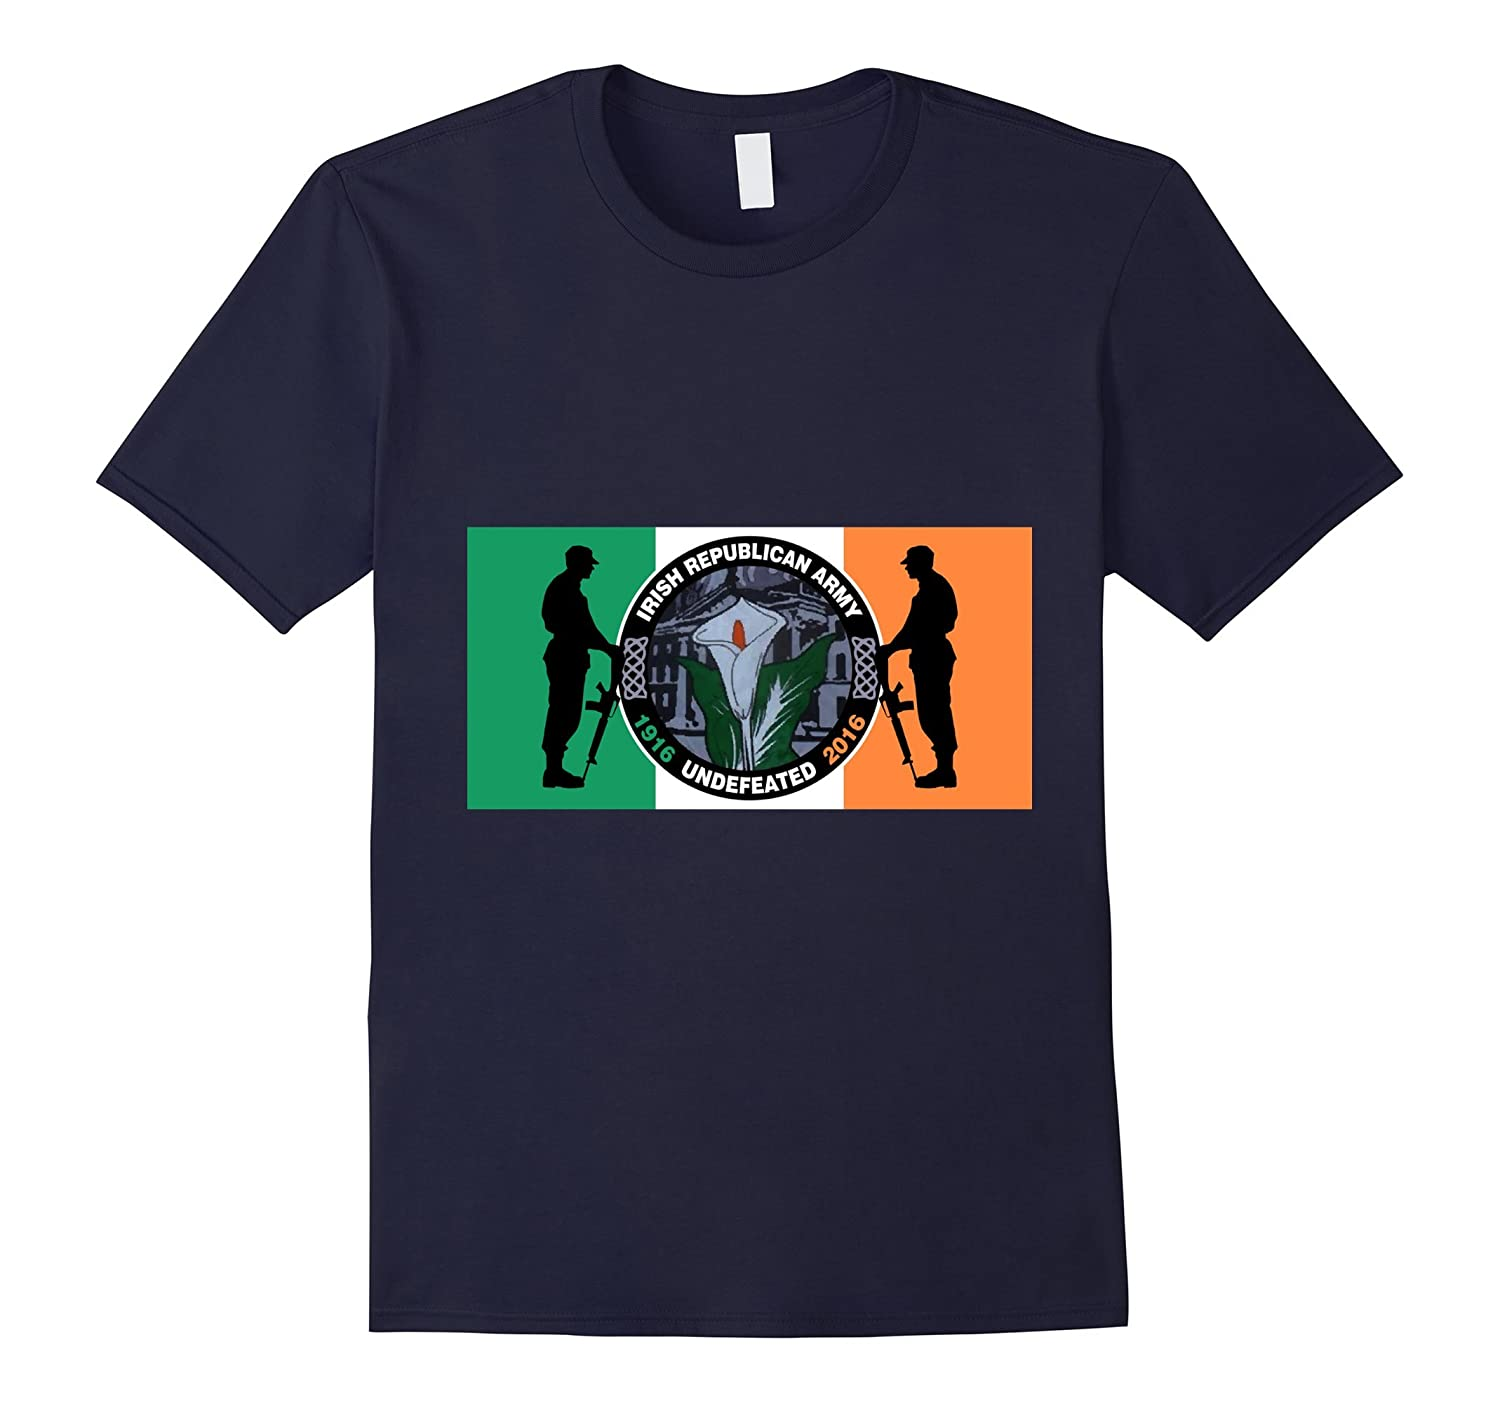 Irish Republican Army Undefeated Easter Rising Flag Shirt